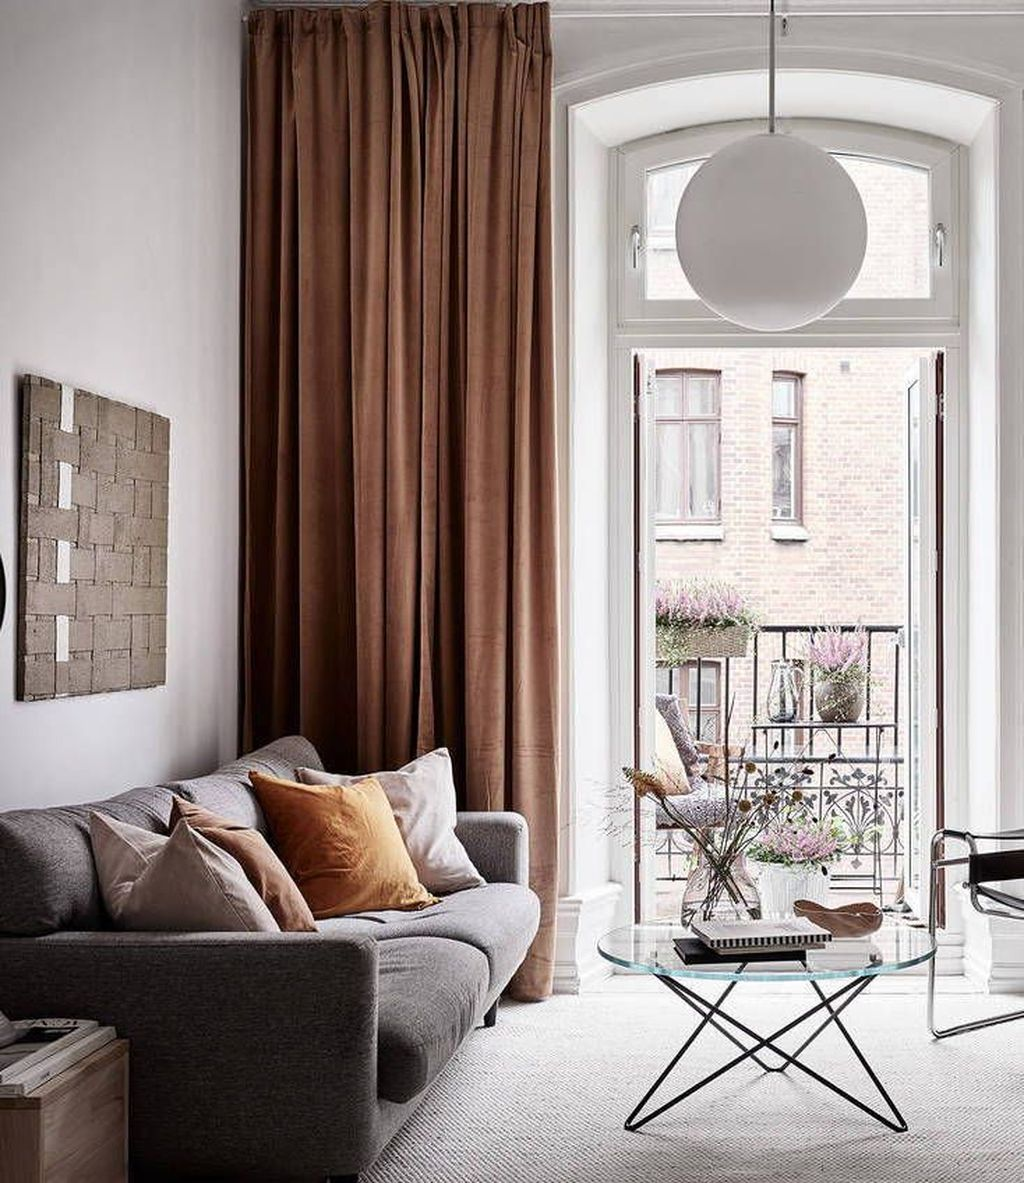 Recommended Minimalist Living Room Decor Ideas That Will Inspire You 23